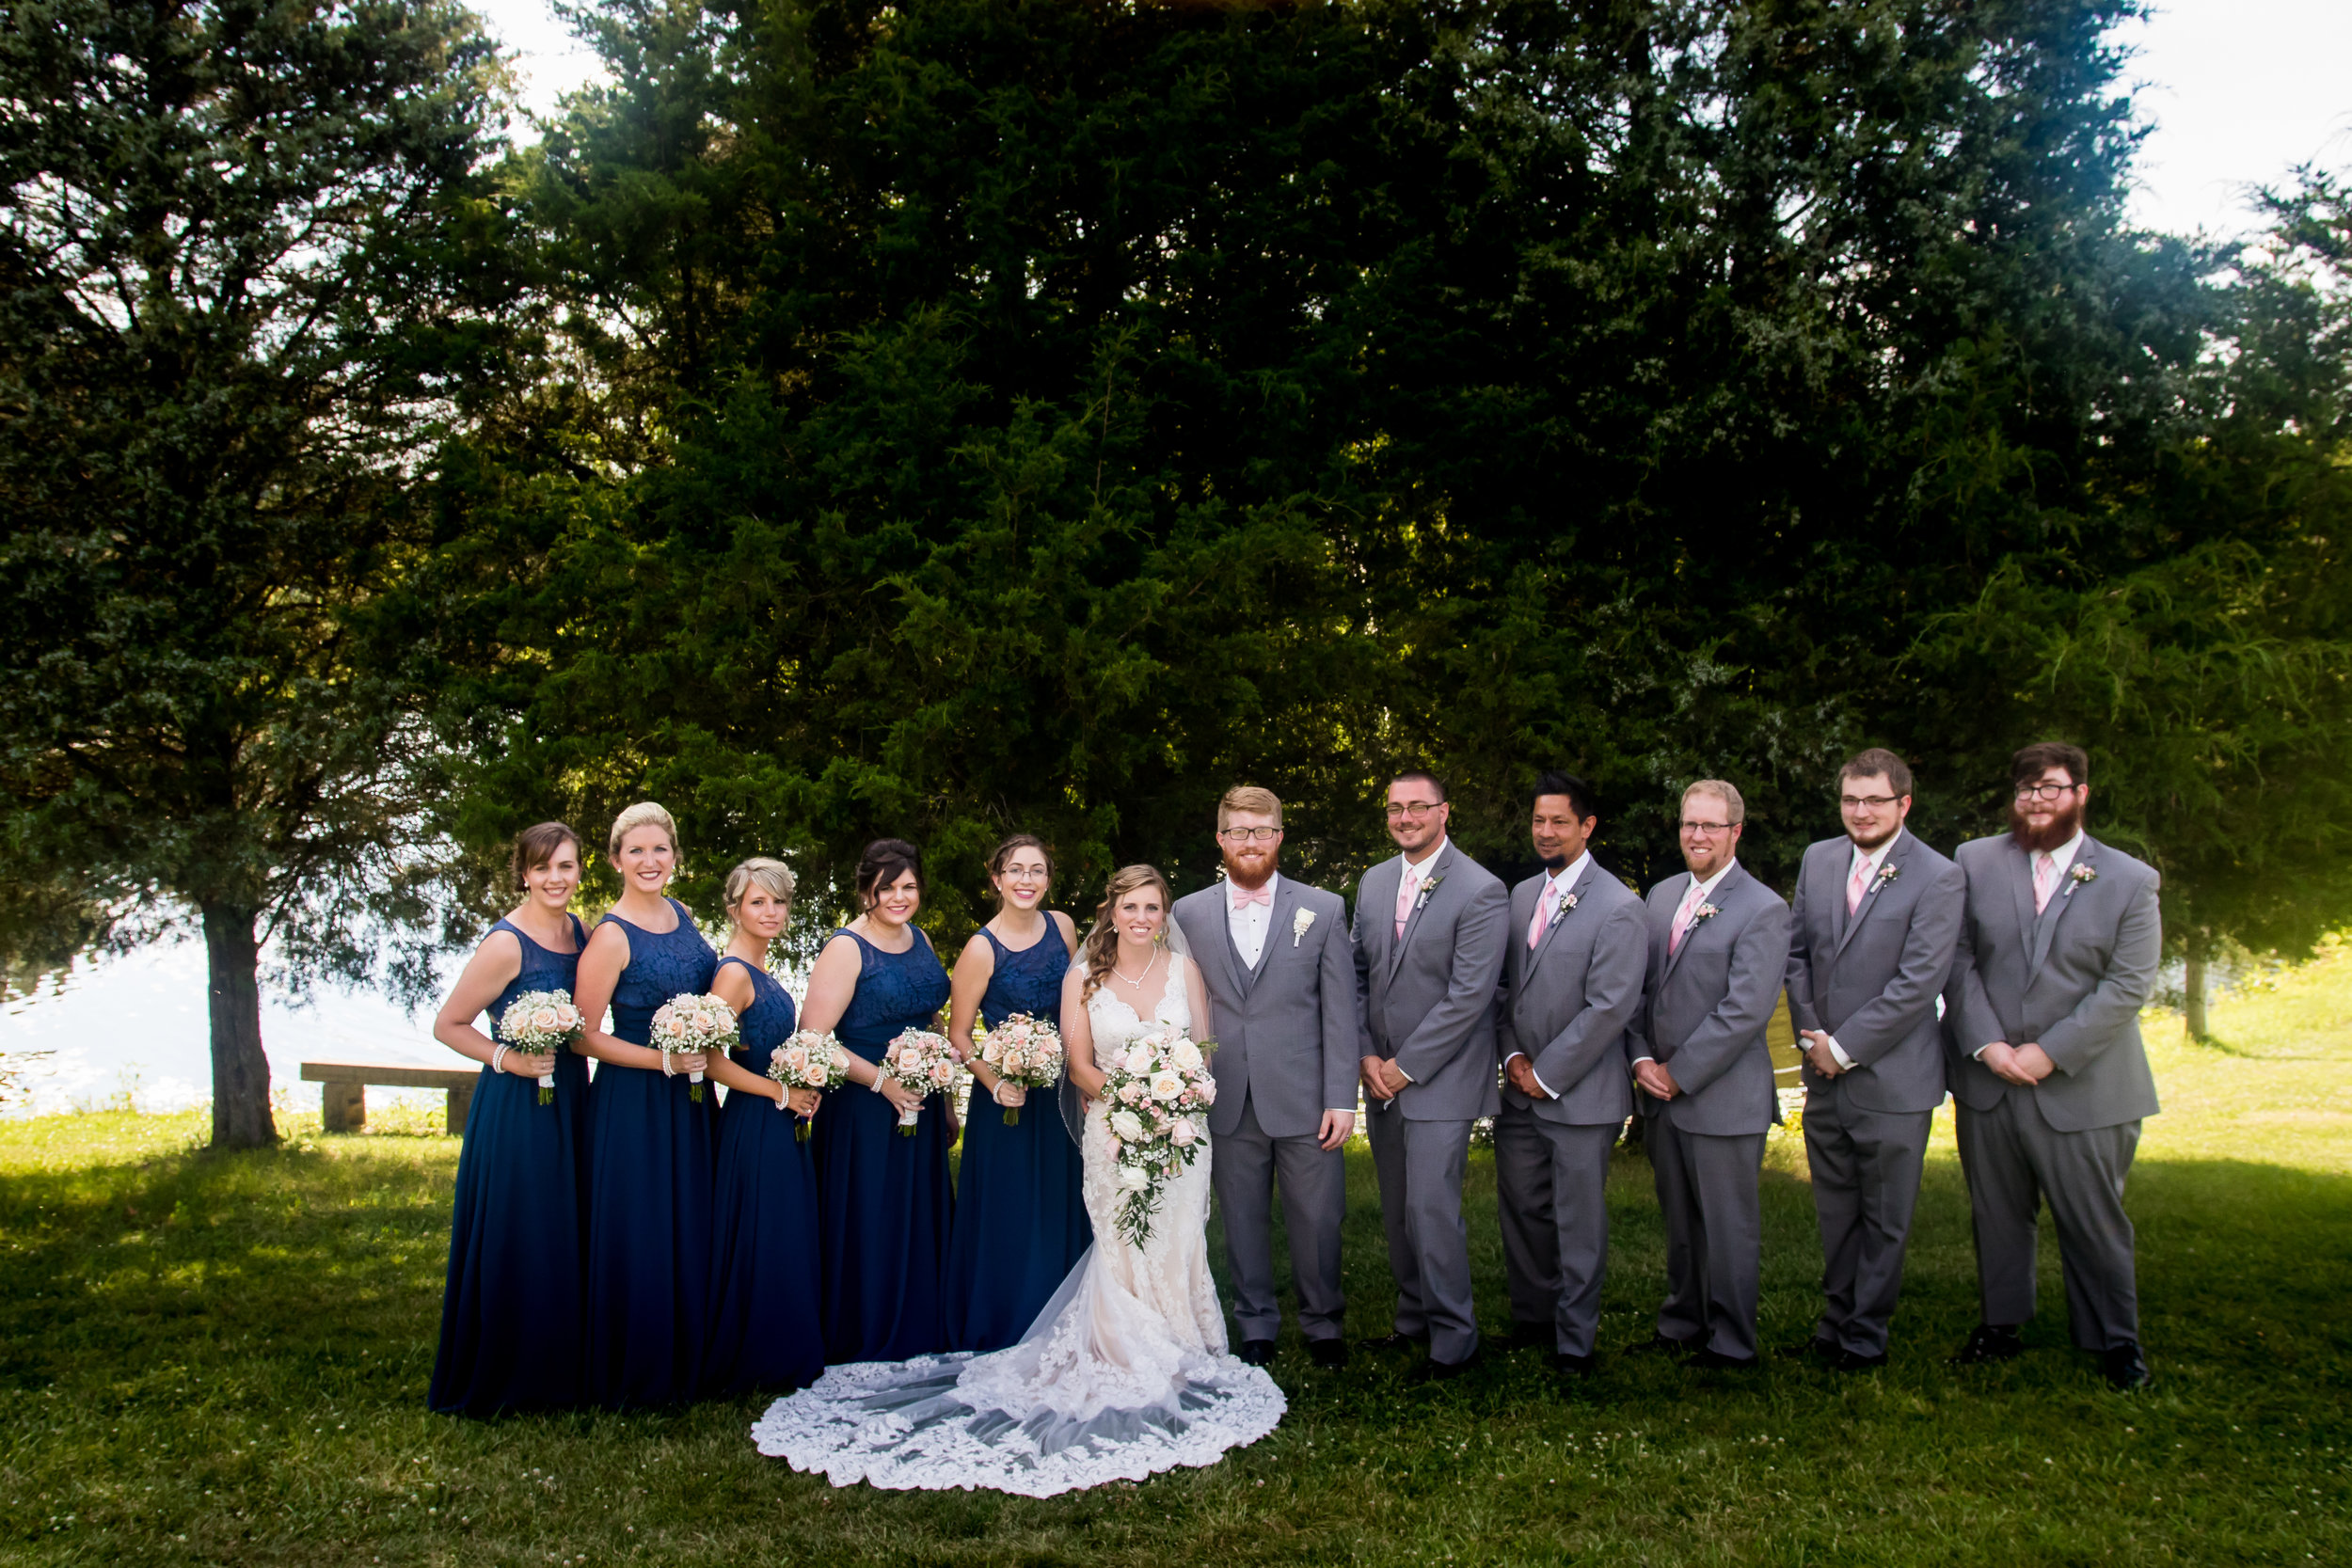 Wedding_Photography_Vinings-777.jpg